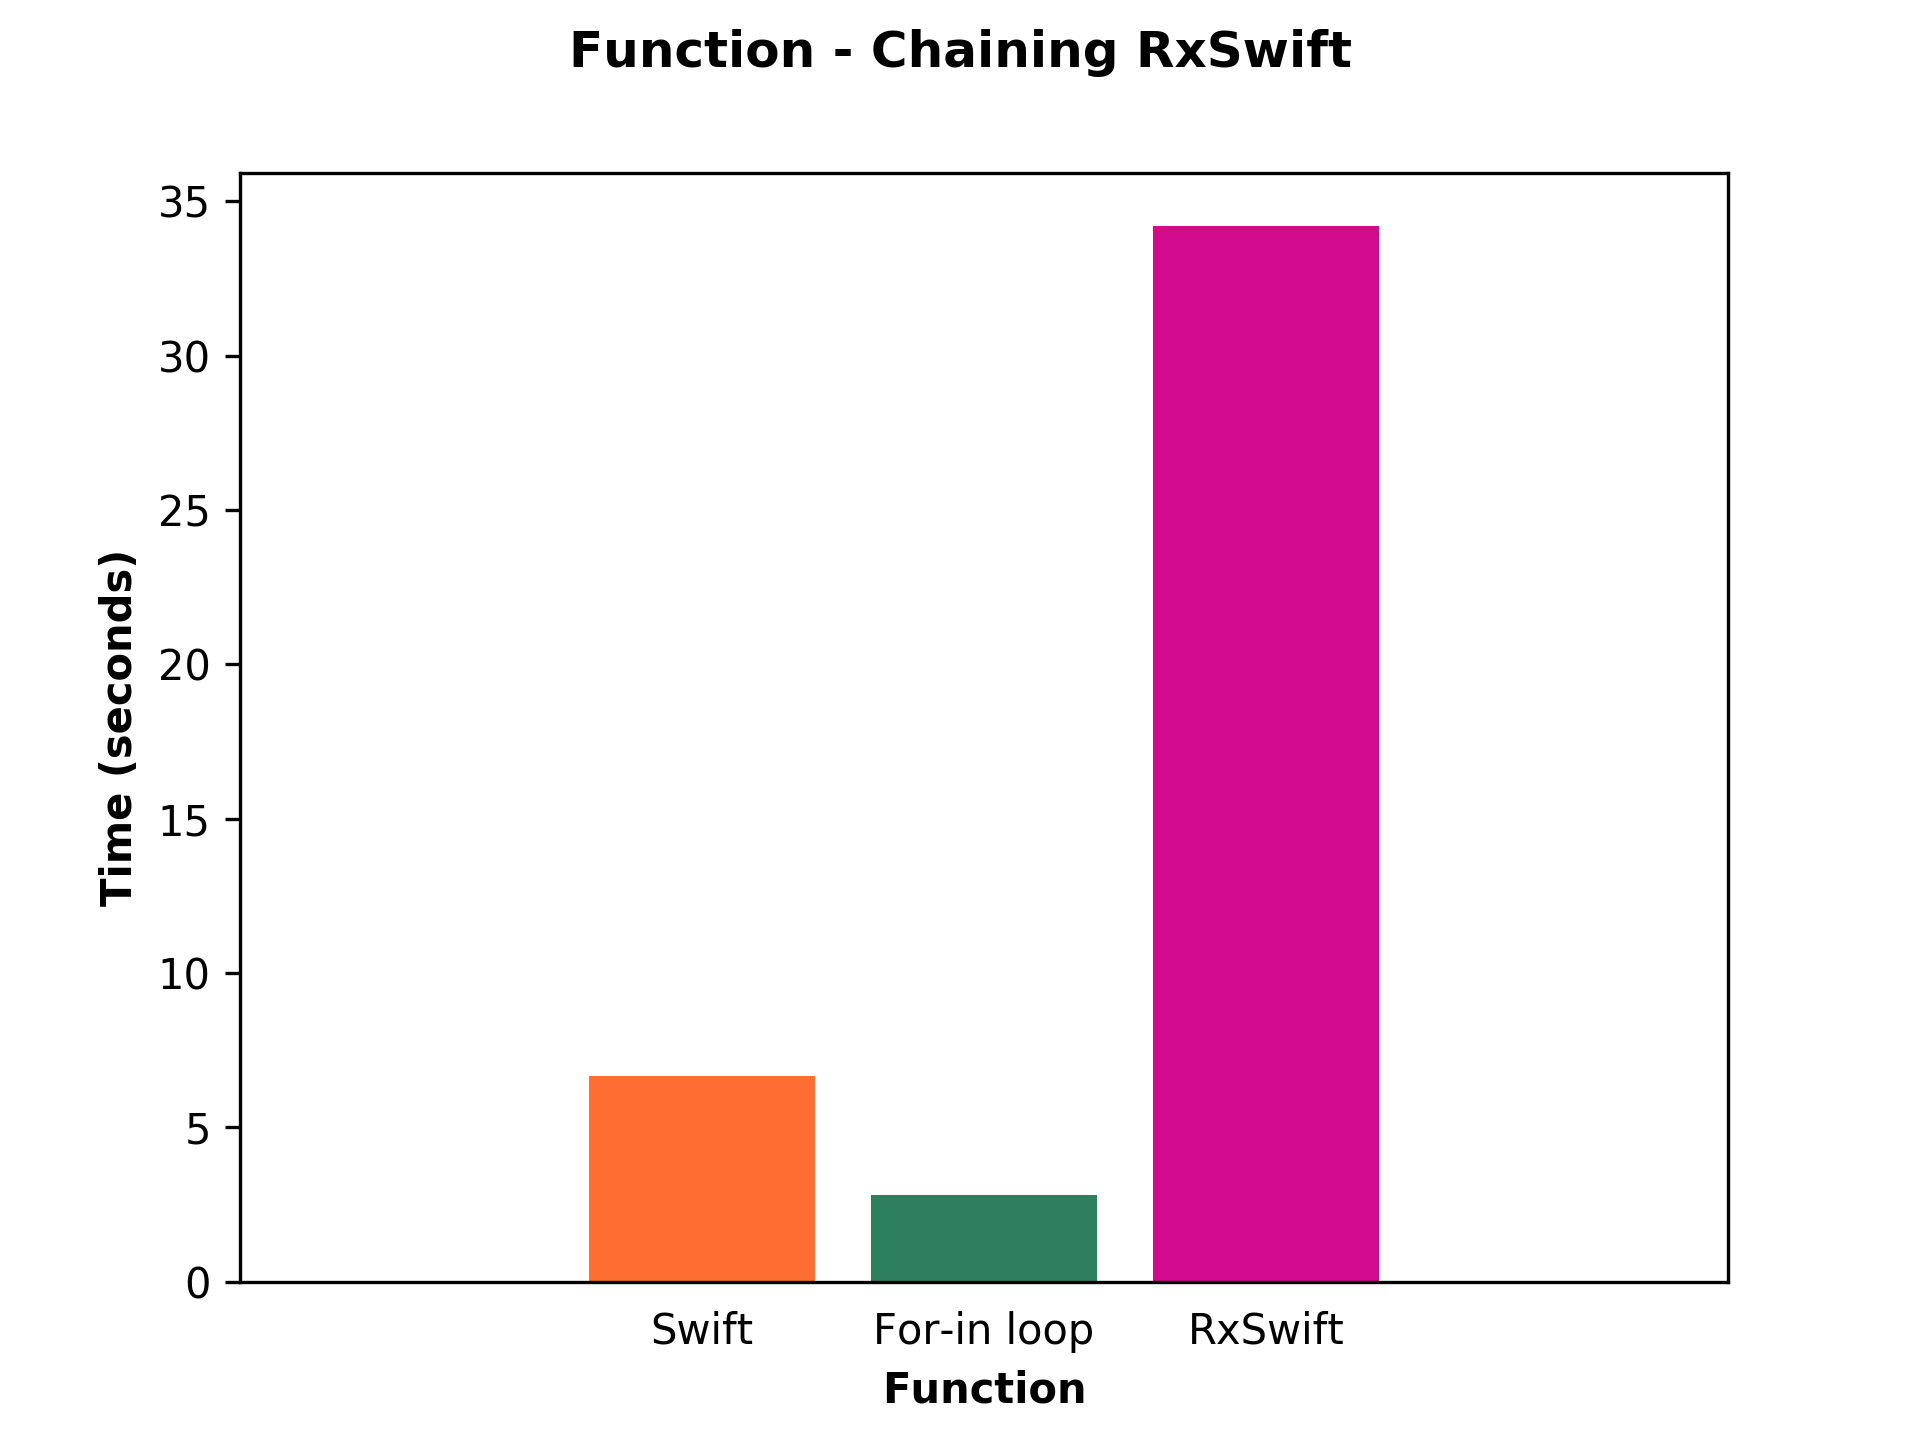 Bar chart shows performance of Swift, For-in loop and RxSwift of function chaining.